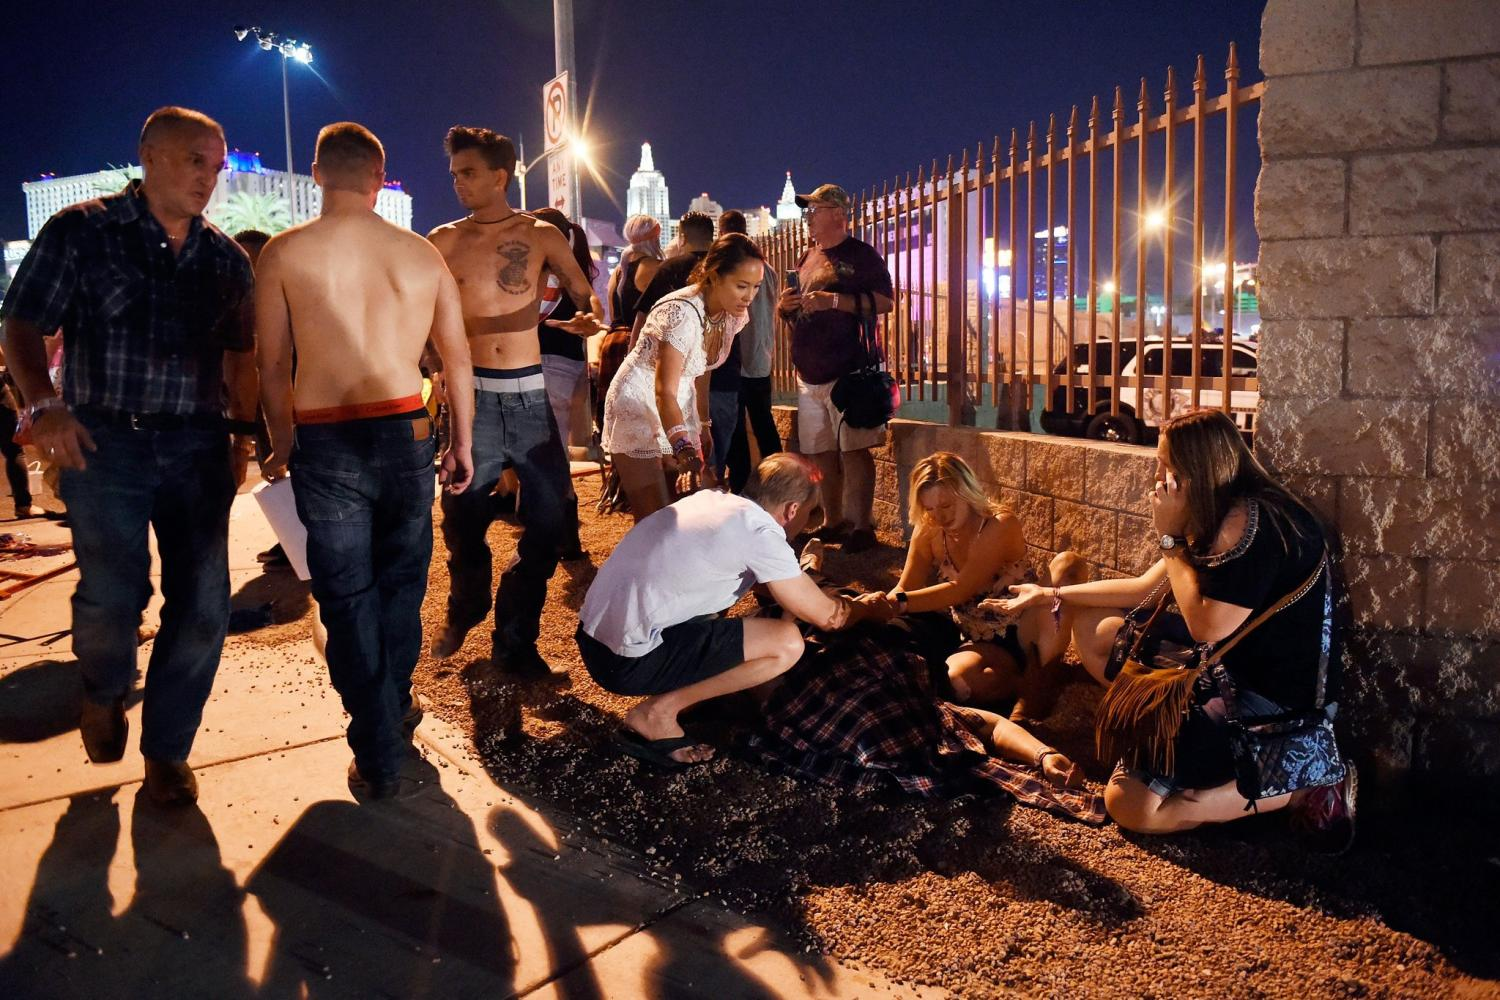 Festival goers attend to an injured after the attack.